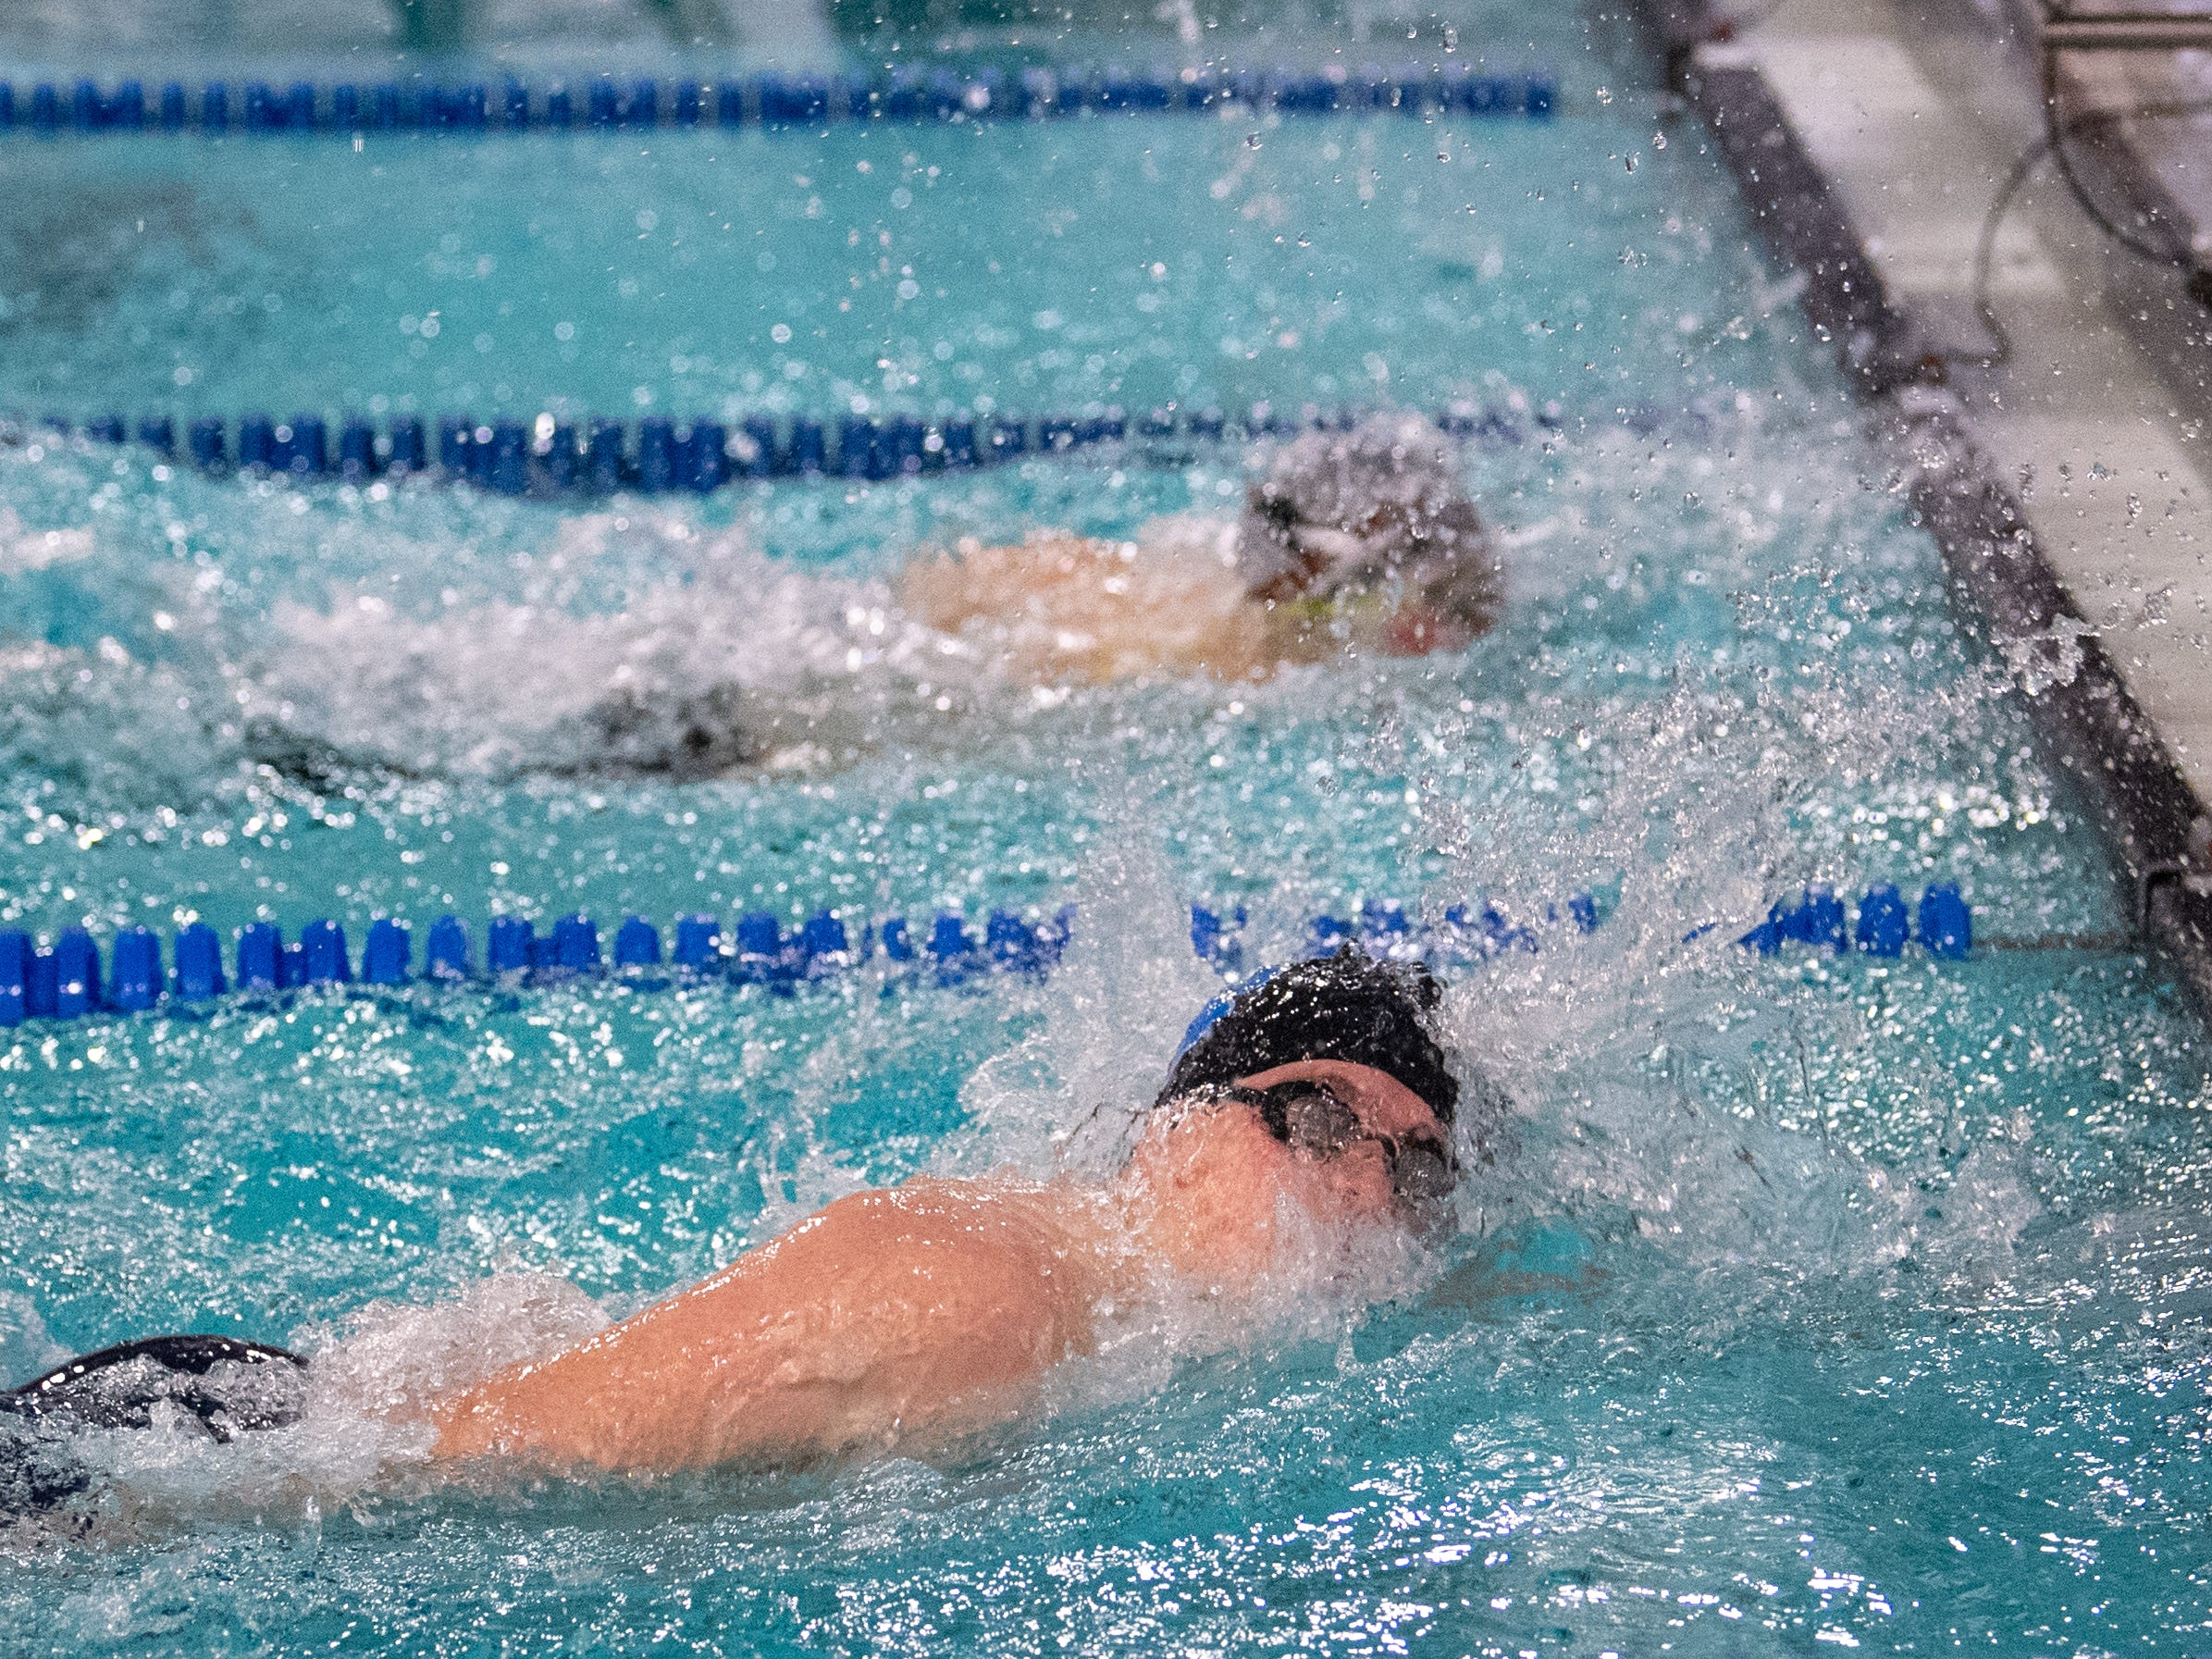 The end of the Boys 400 Yard Freestyle Relay is very close, but Central York ends up taking home the win during the boys' and girls' swim meet, January 10, 2019. The Panthers defeated the Wildcats 93 to 77 and the Lady Panthers defeated the Lady Wildcats 96 to 74.